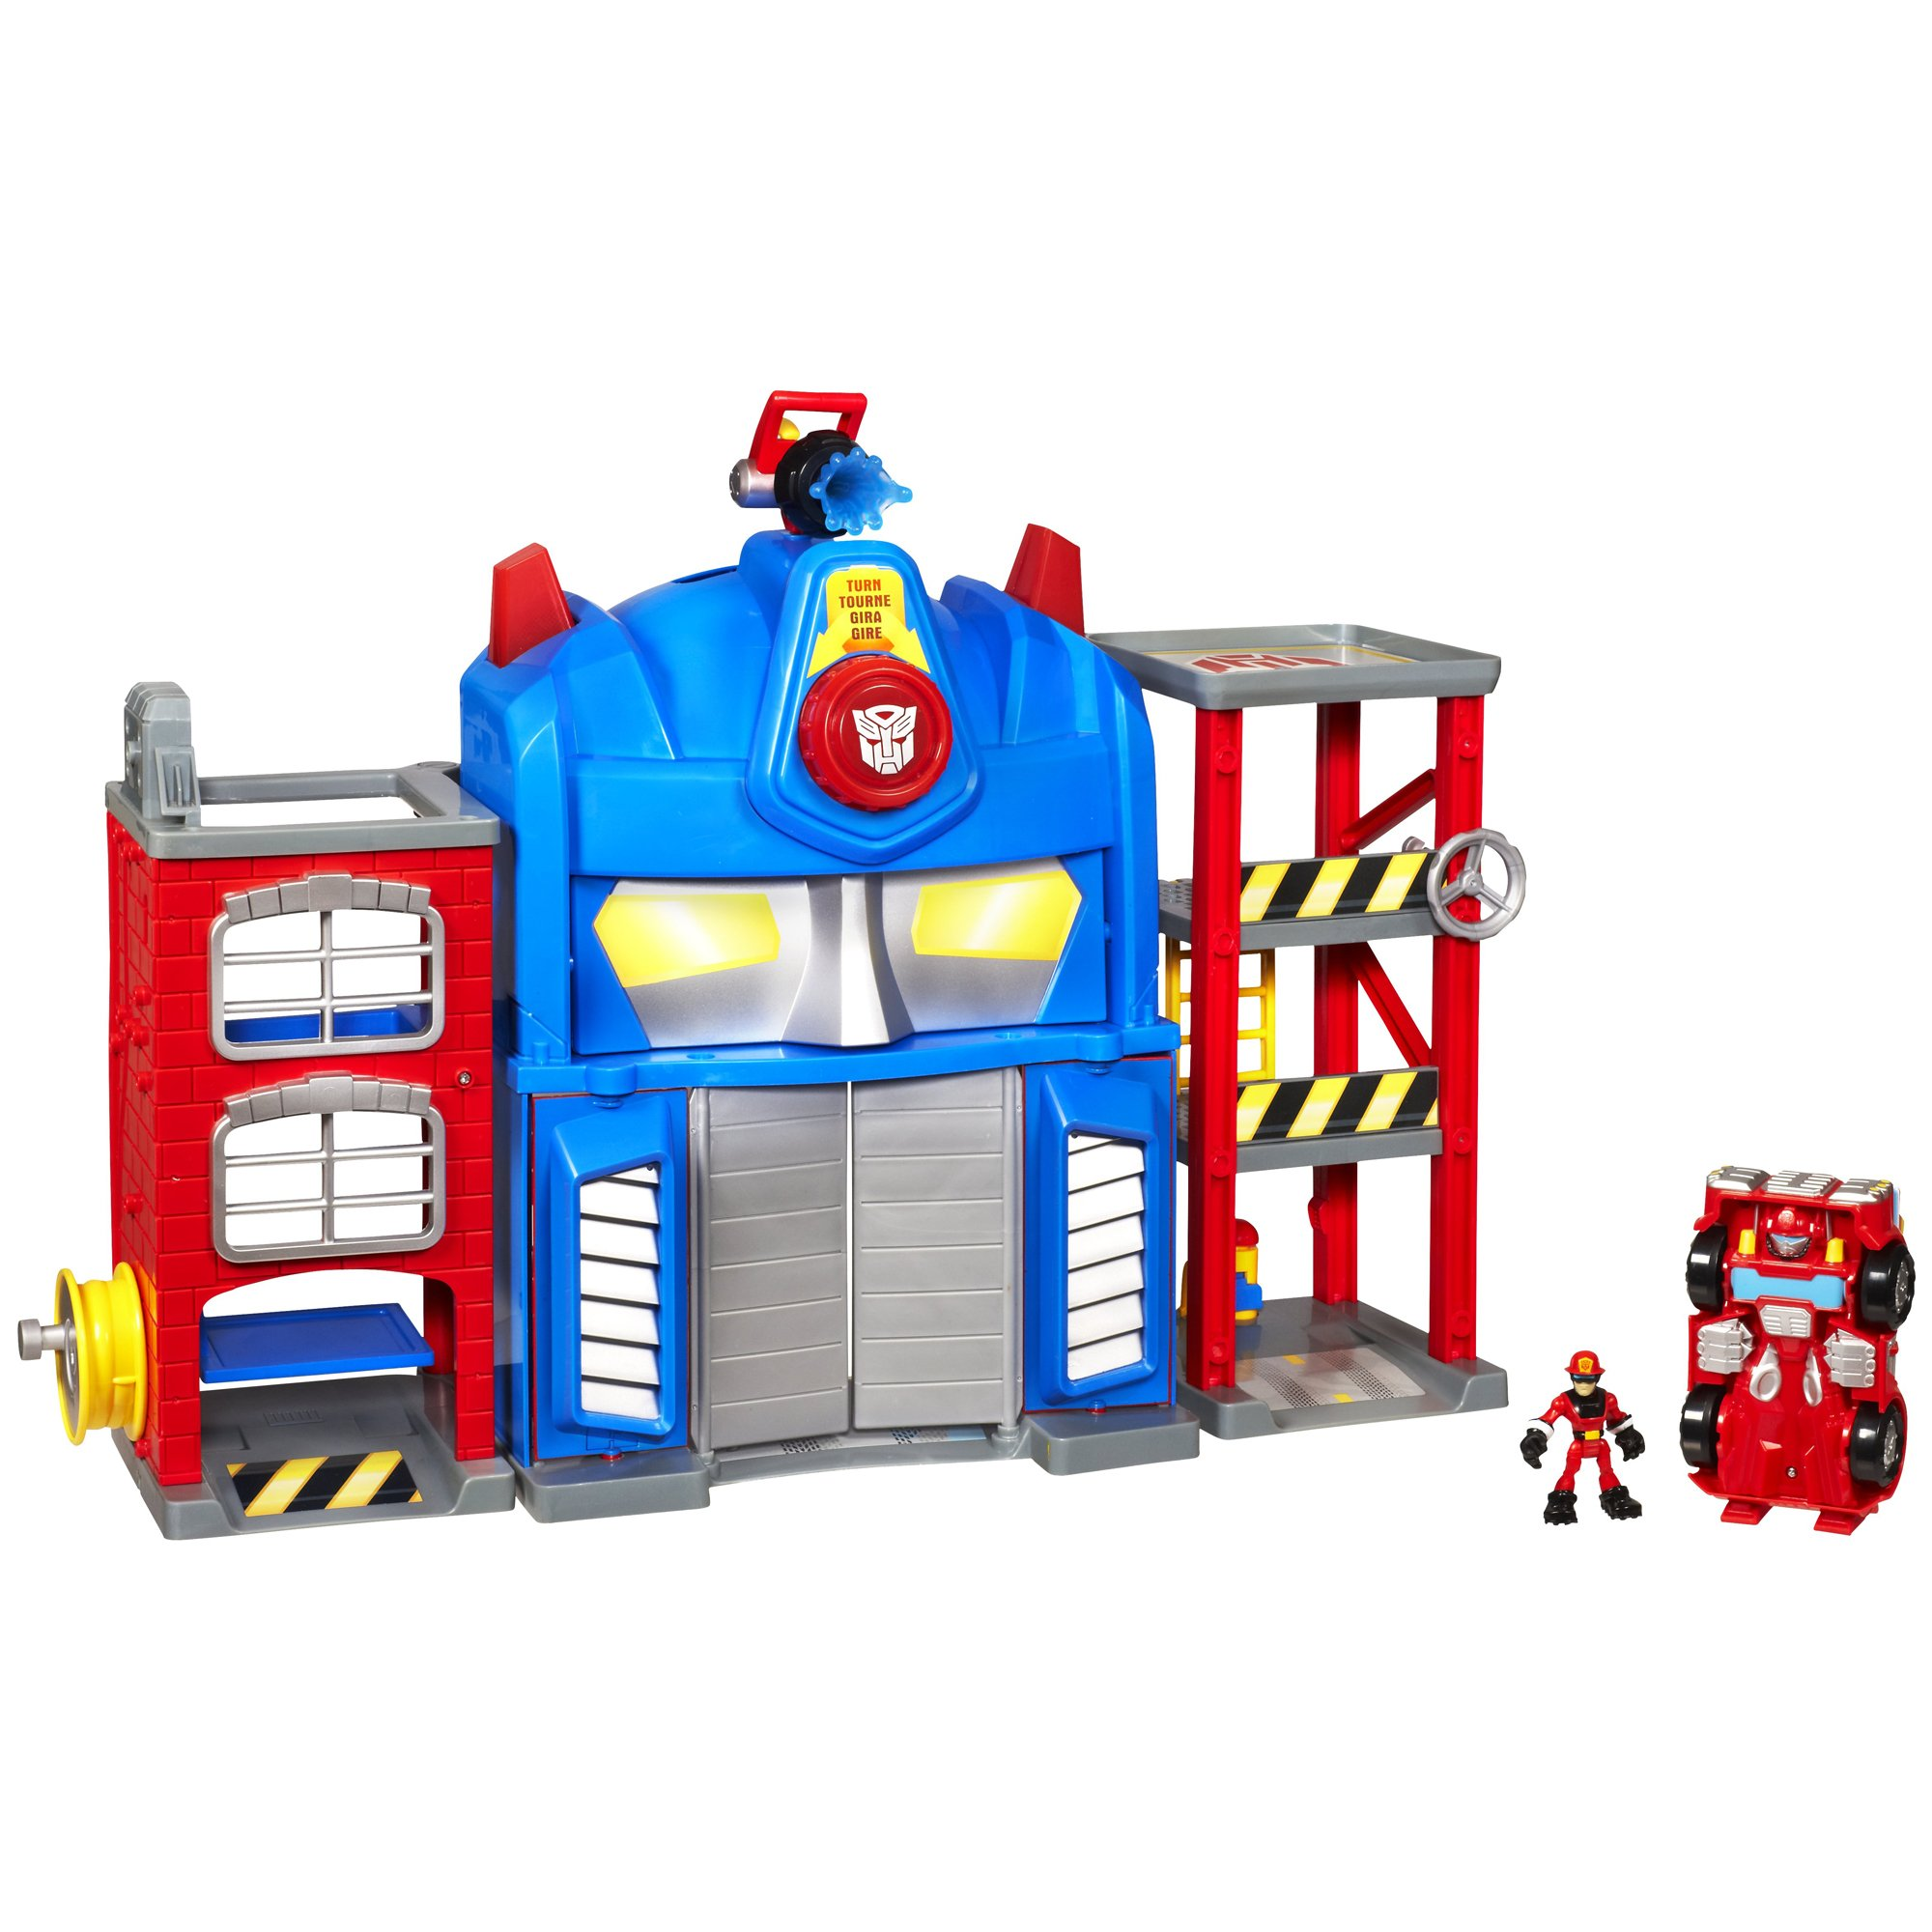 Dinosaurs Mdf Toy Box Childrens Storage Toys Games Books: Transformers Rescue Bots Playskool Heroes Fire Station